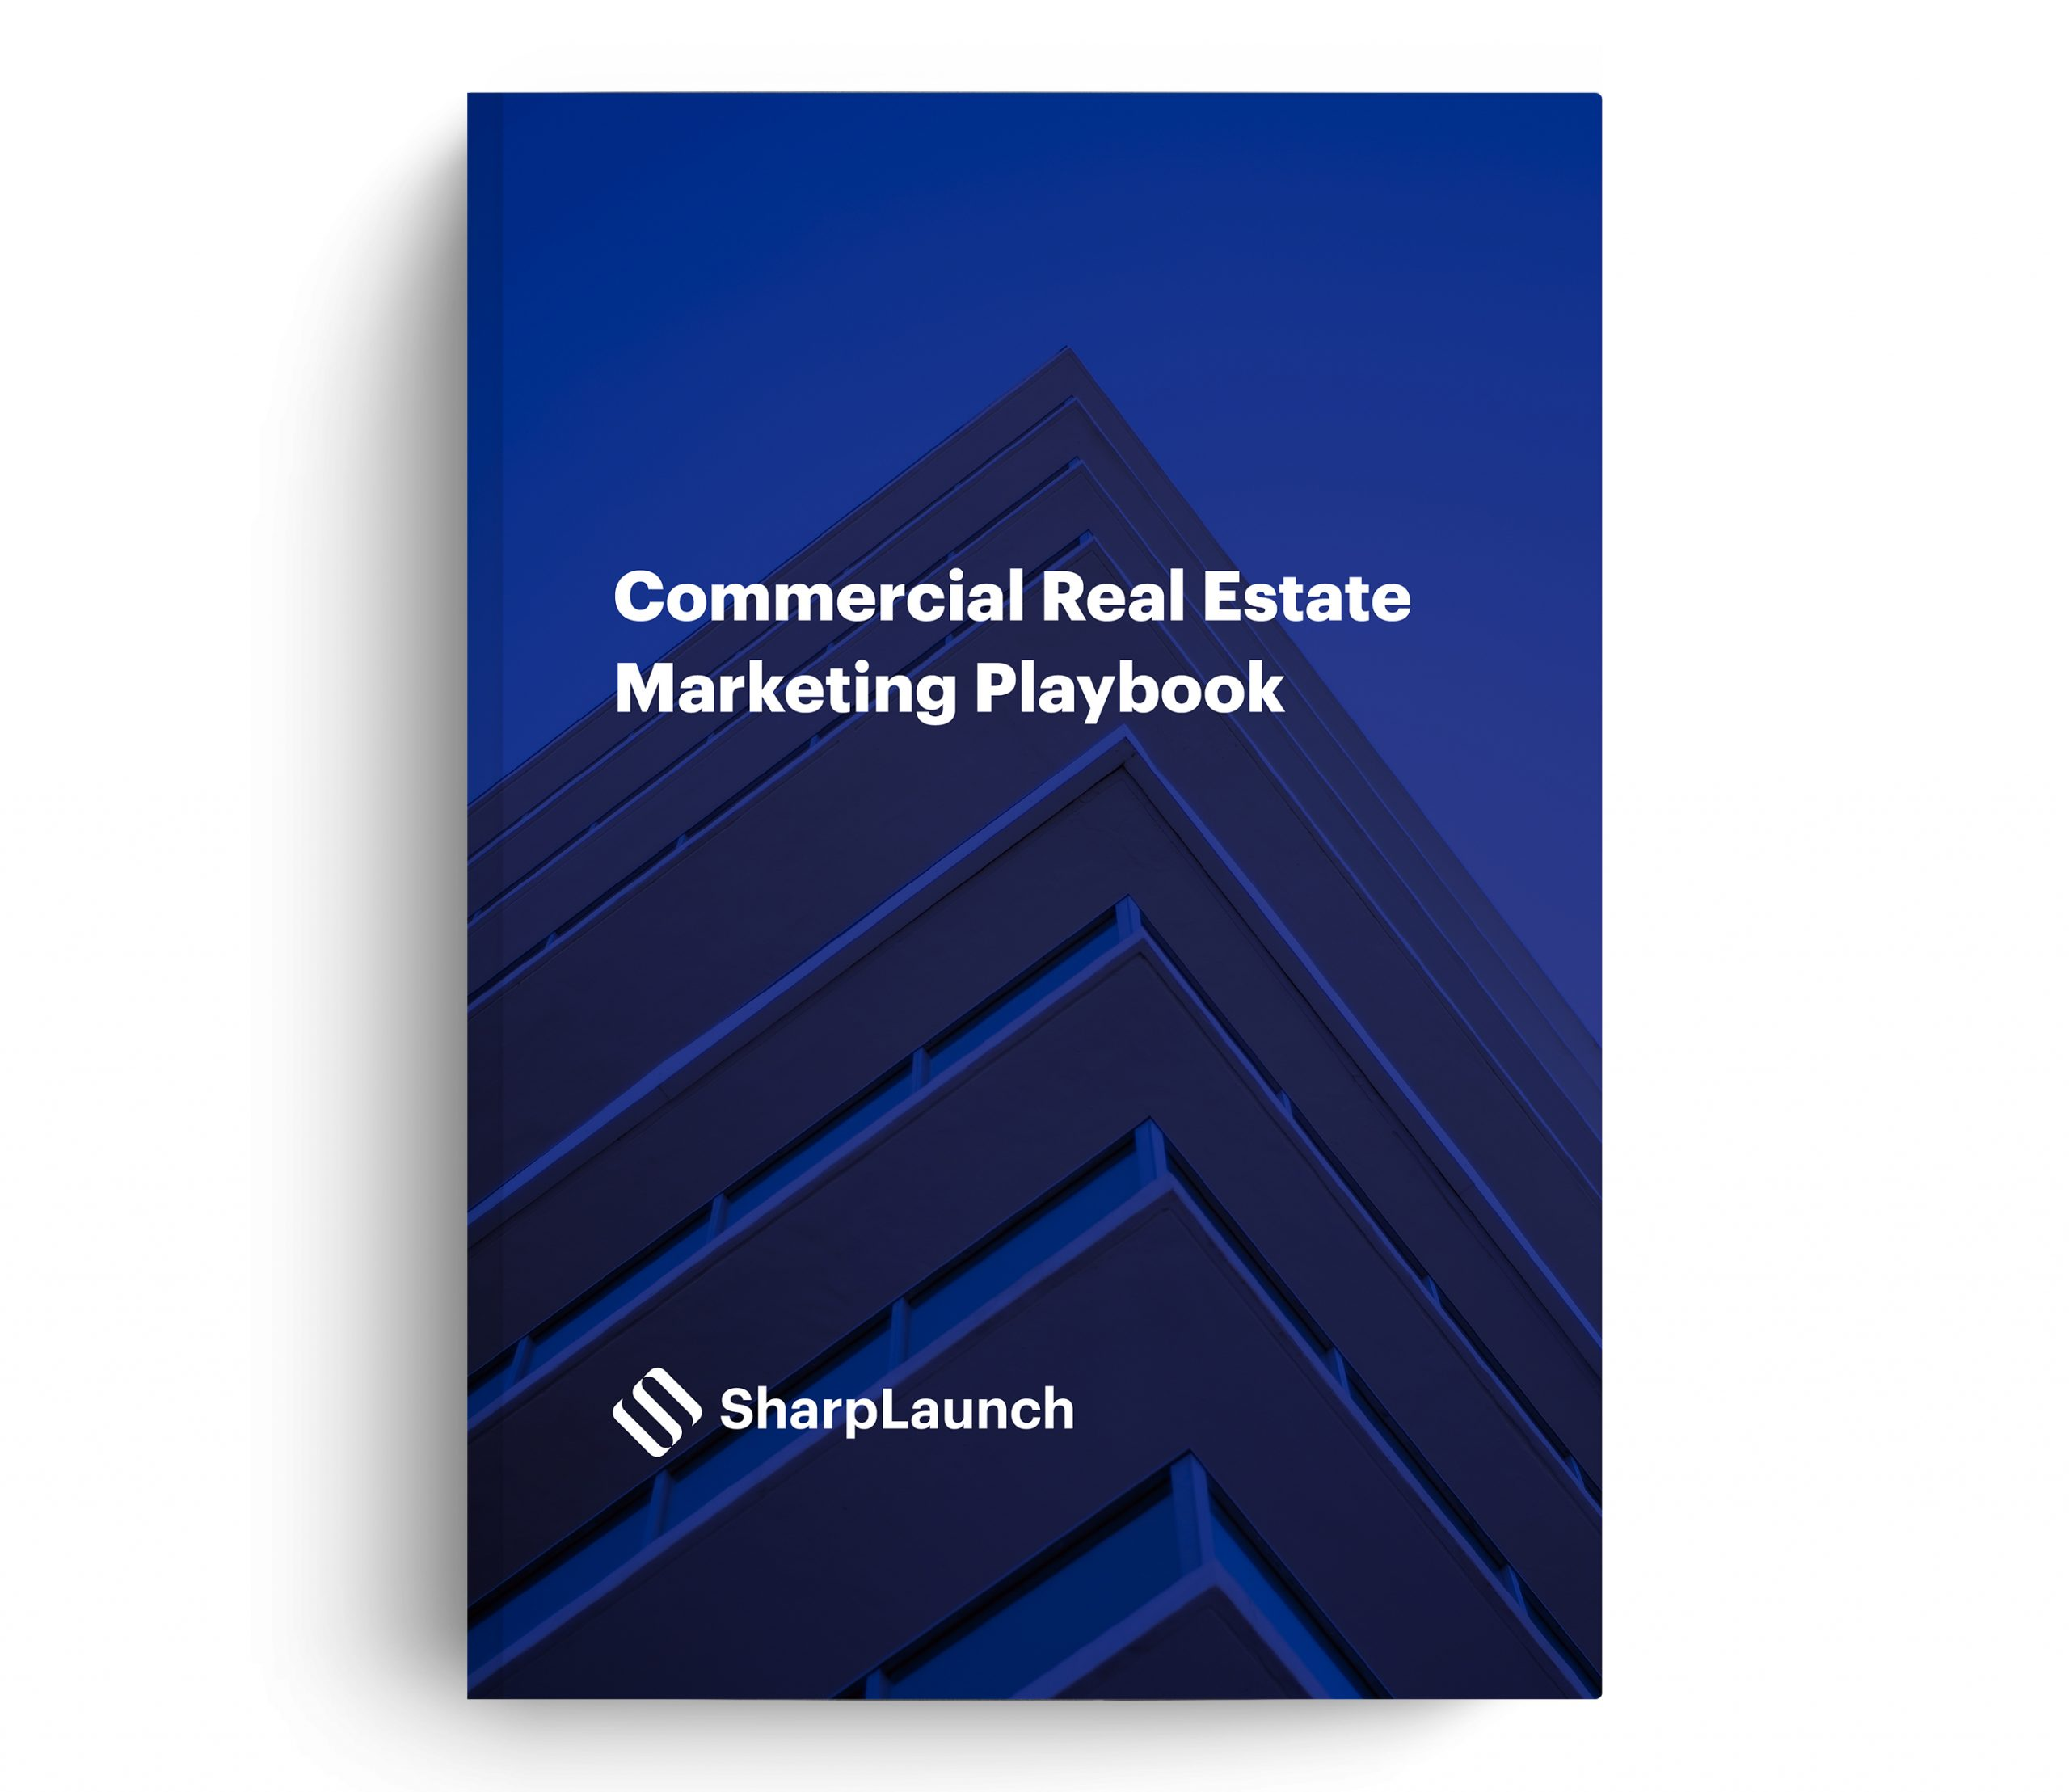 Commercial Real Estate Marketing Playbook